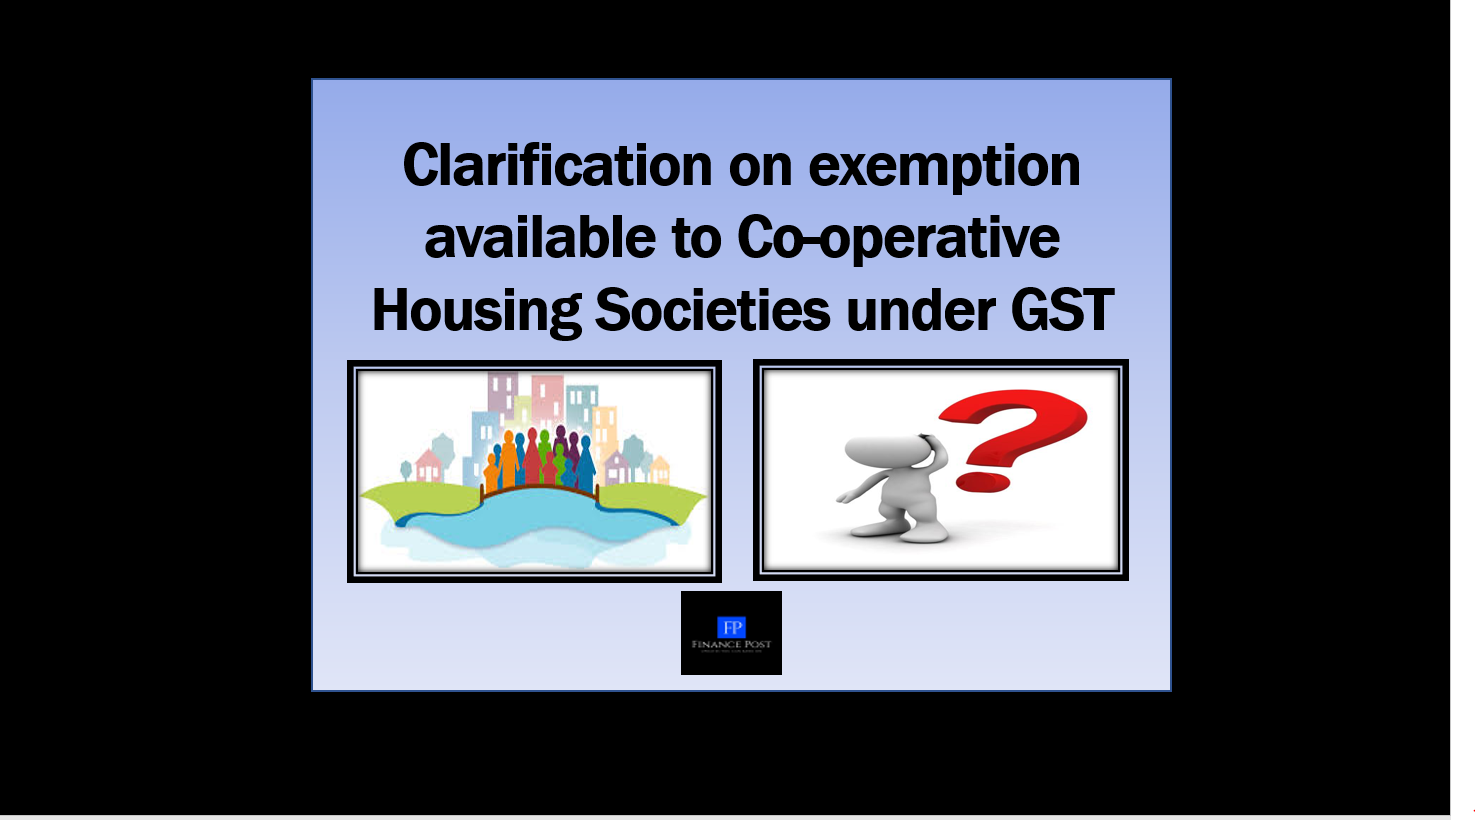 Clarification on exemption available to Co-operative Housing Societies under GST